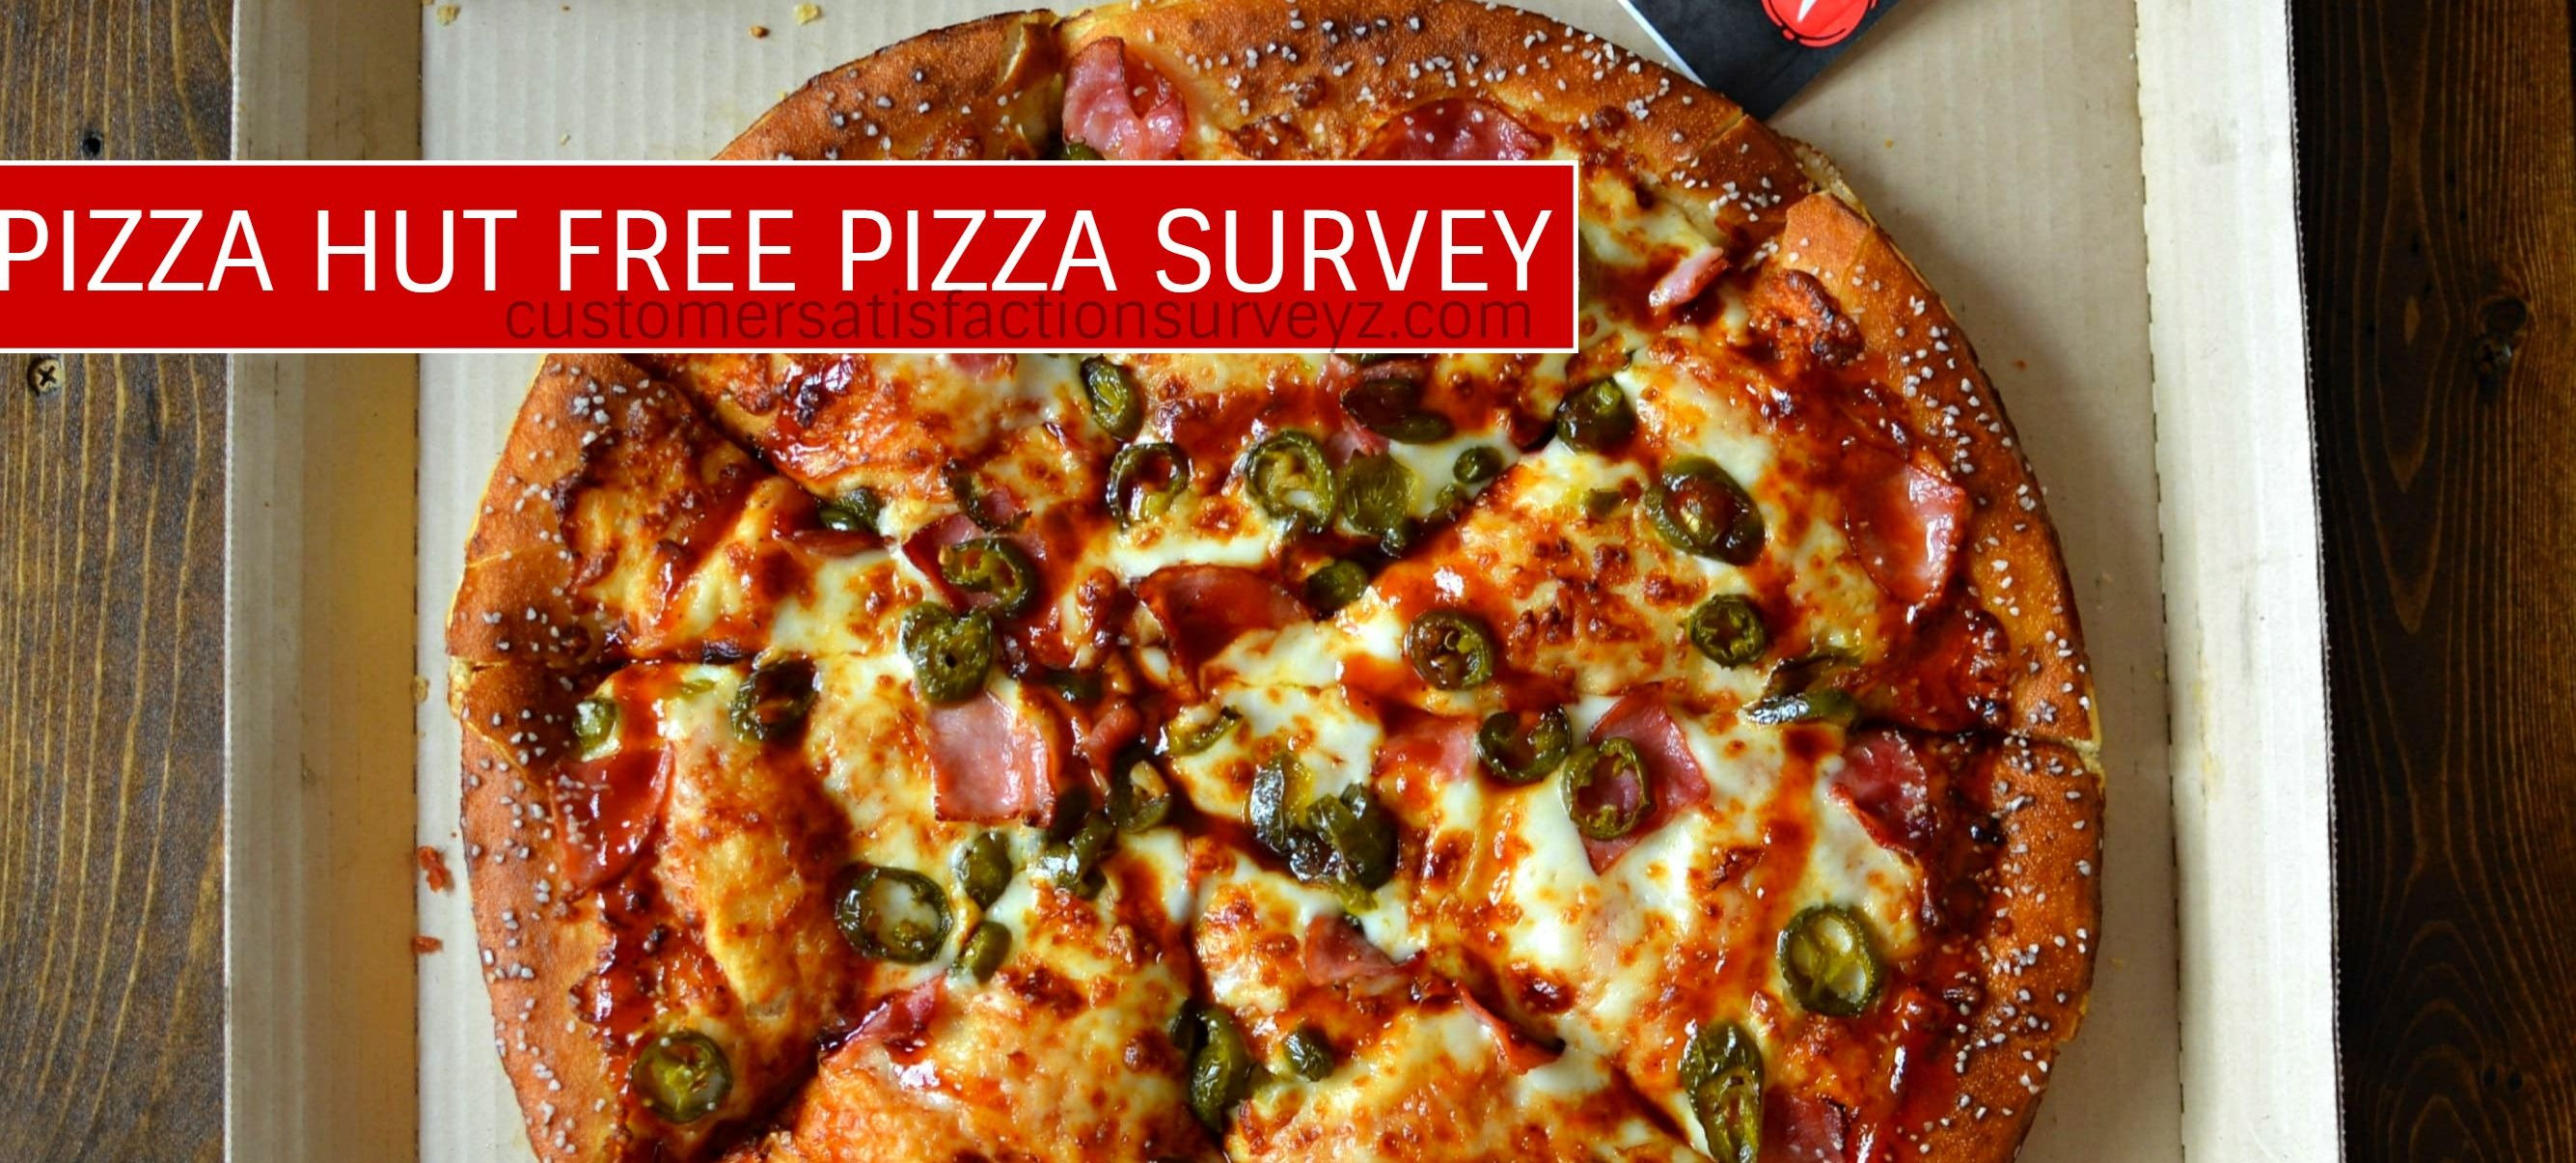 Pizza Hut Survey Free Pizza